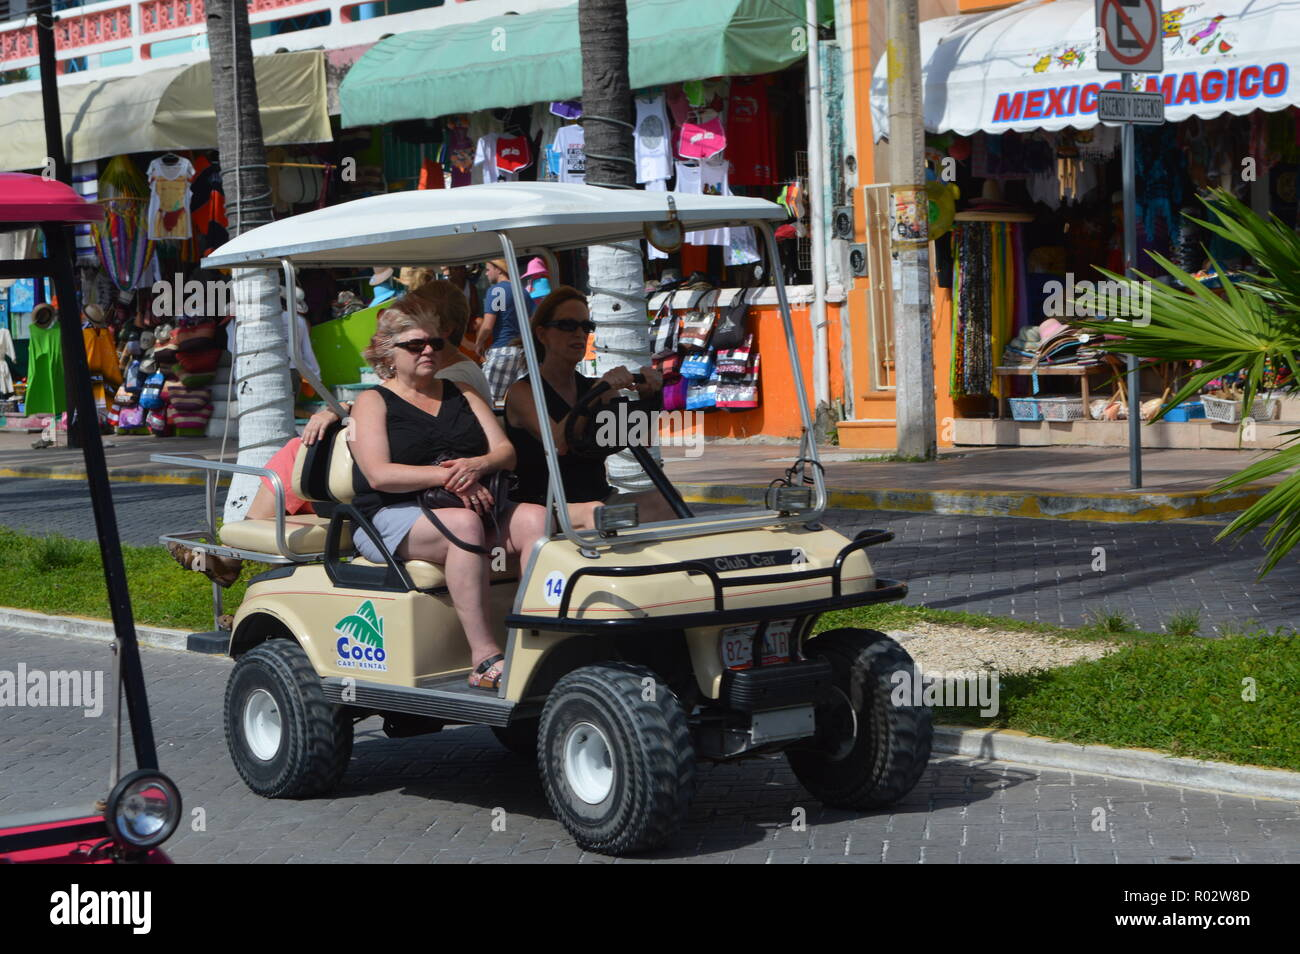 Walk through the streets of Islas Mujeres in a golf cart. Stock Photo